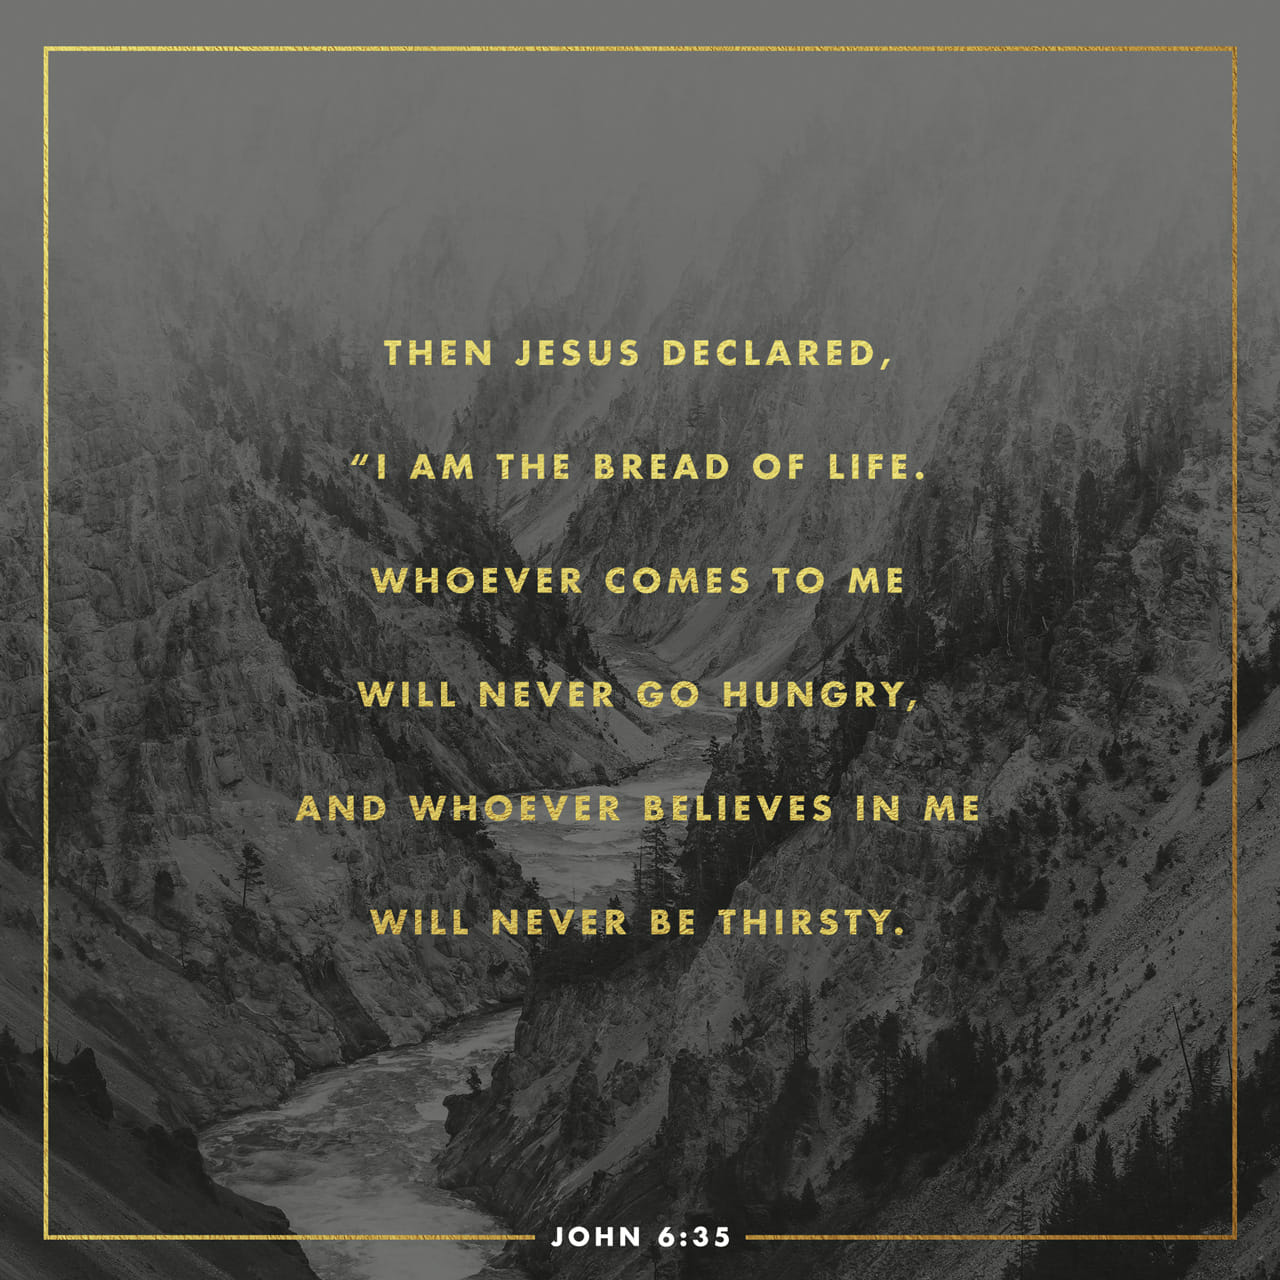 John 6:35 And Jesus said unto them, I am the bread of life: he that cometh to me shall never hunger; and he that believeth on me shall never thirst. | King James Version (KJV)